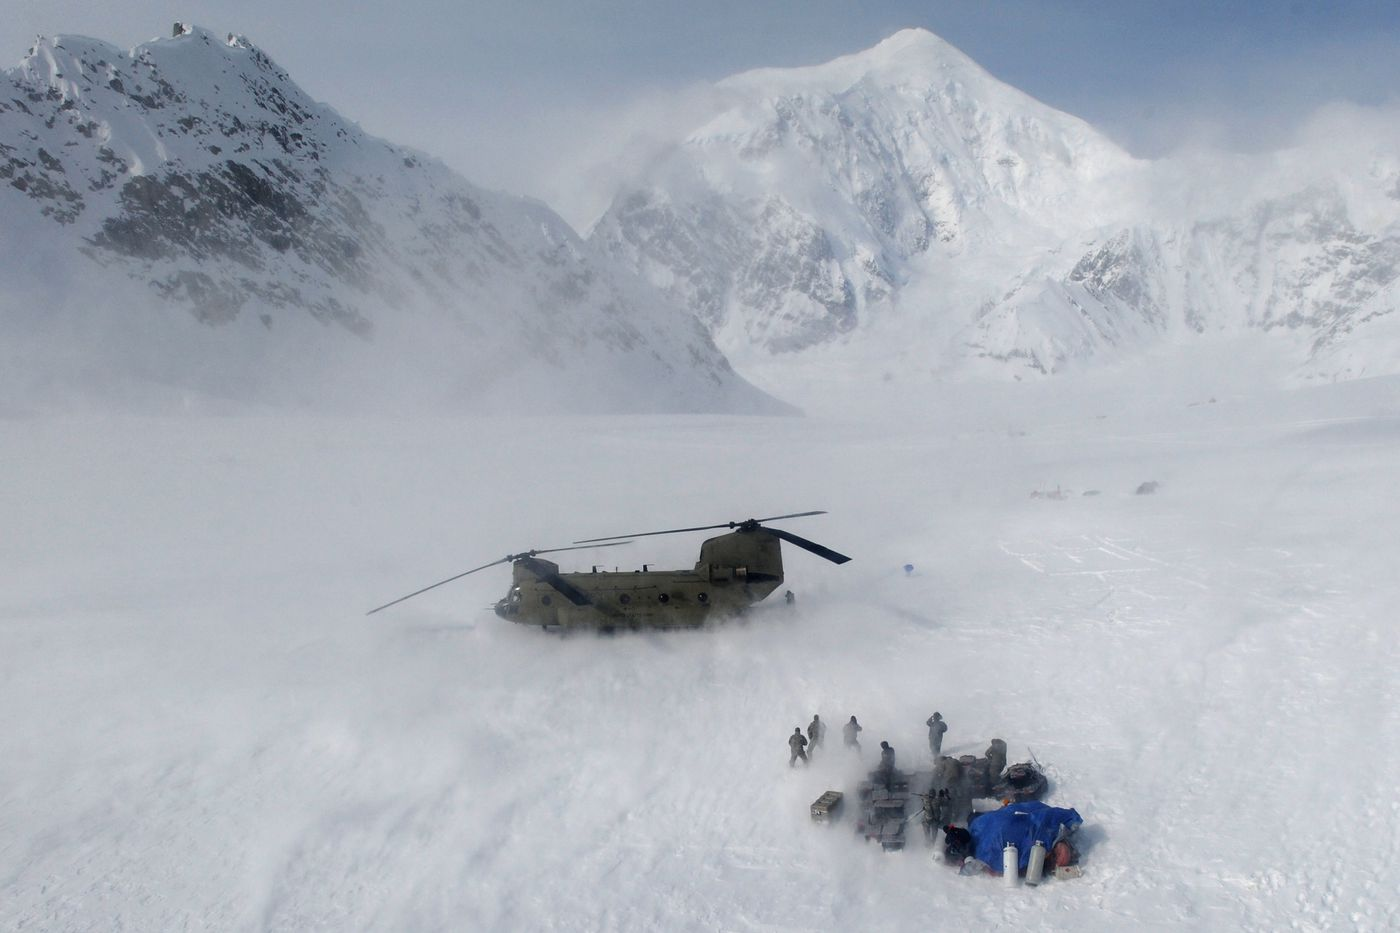 Wind from a landing CH-47 Chinook helicopter kicks up snow as soldiers with B Company,1st Battalion, 52nd Aviation Regiment from Fort Wainwright assist the National Park Service by airlifting supplies from Talkeetna to the base camp being established for the upcoming climbing season at the 7,200-foot level of Denali, the tallest mountain in North American. They landed on the southeast fork of the Kahiltna Glacier last April. (Bill Roth / Alaska Dispatch News)